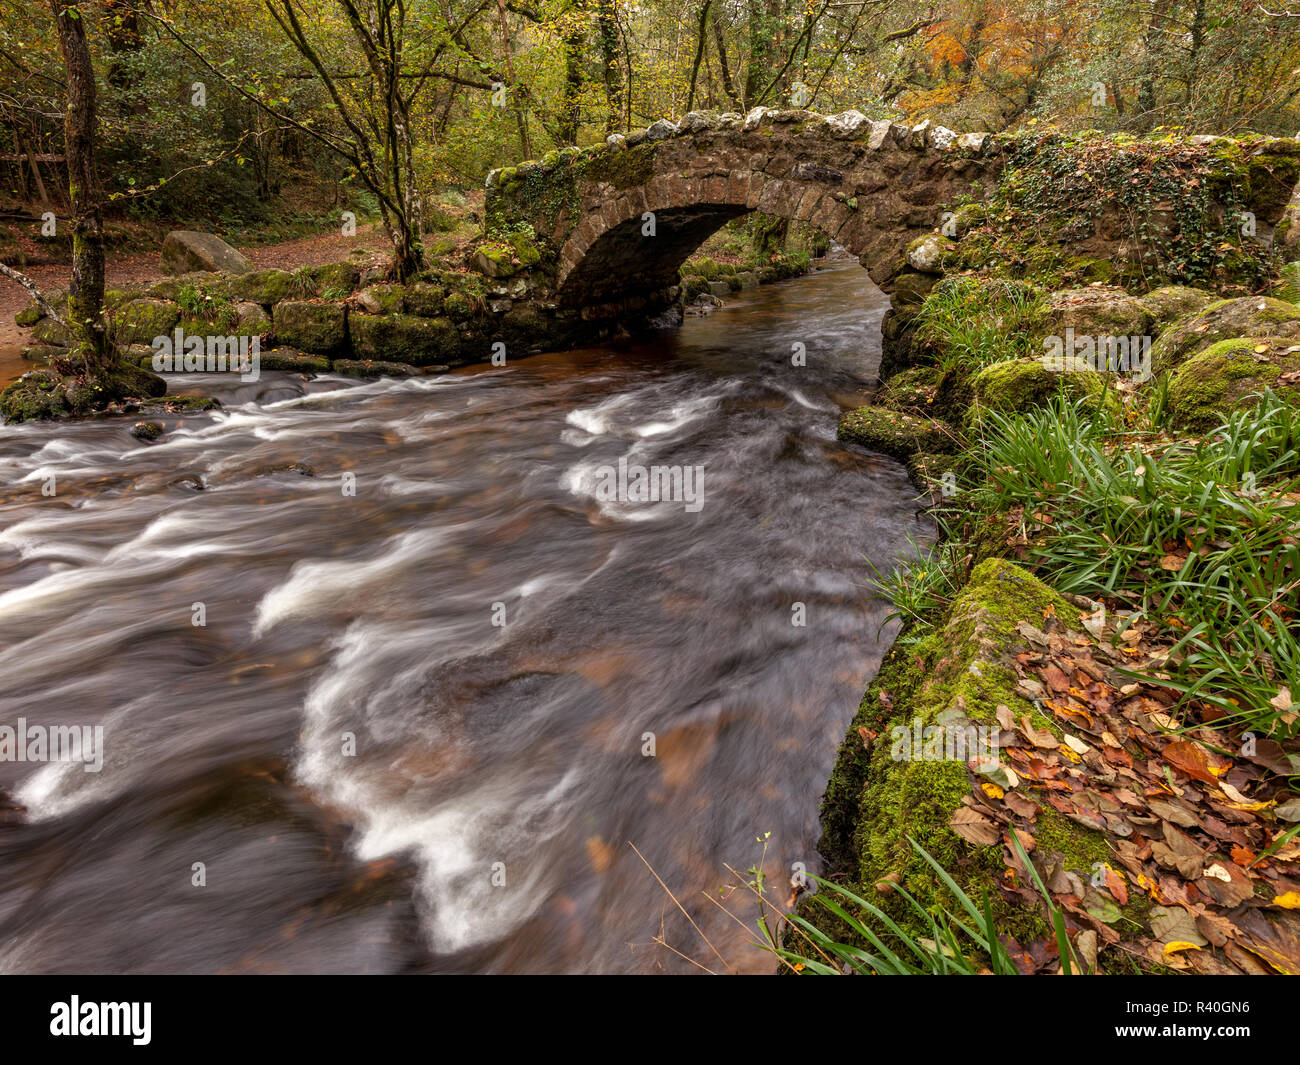 The River Bovey at Hisley Bridge, Dartmoor National Park - Stock Image